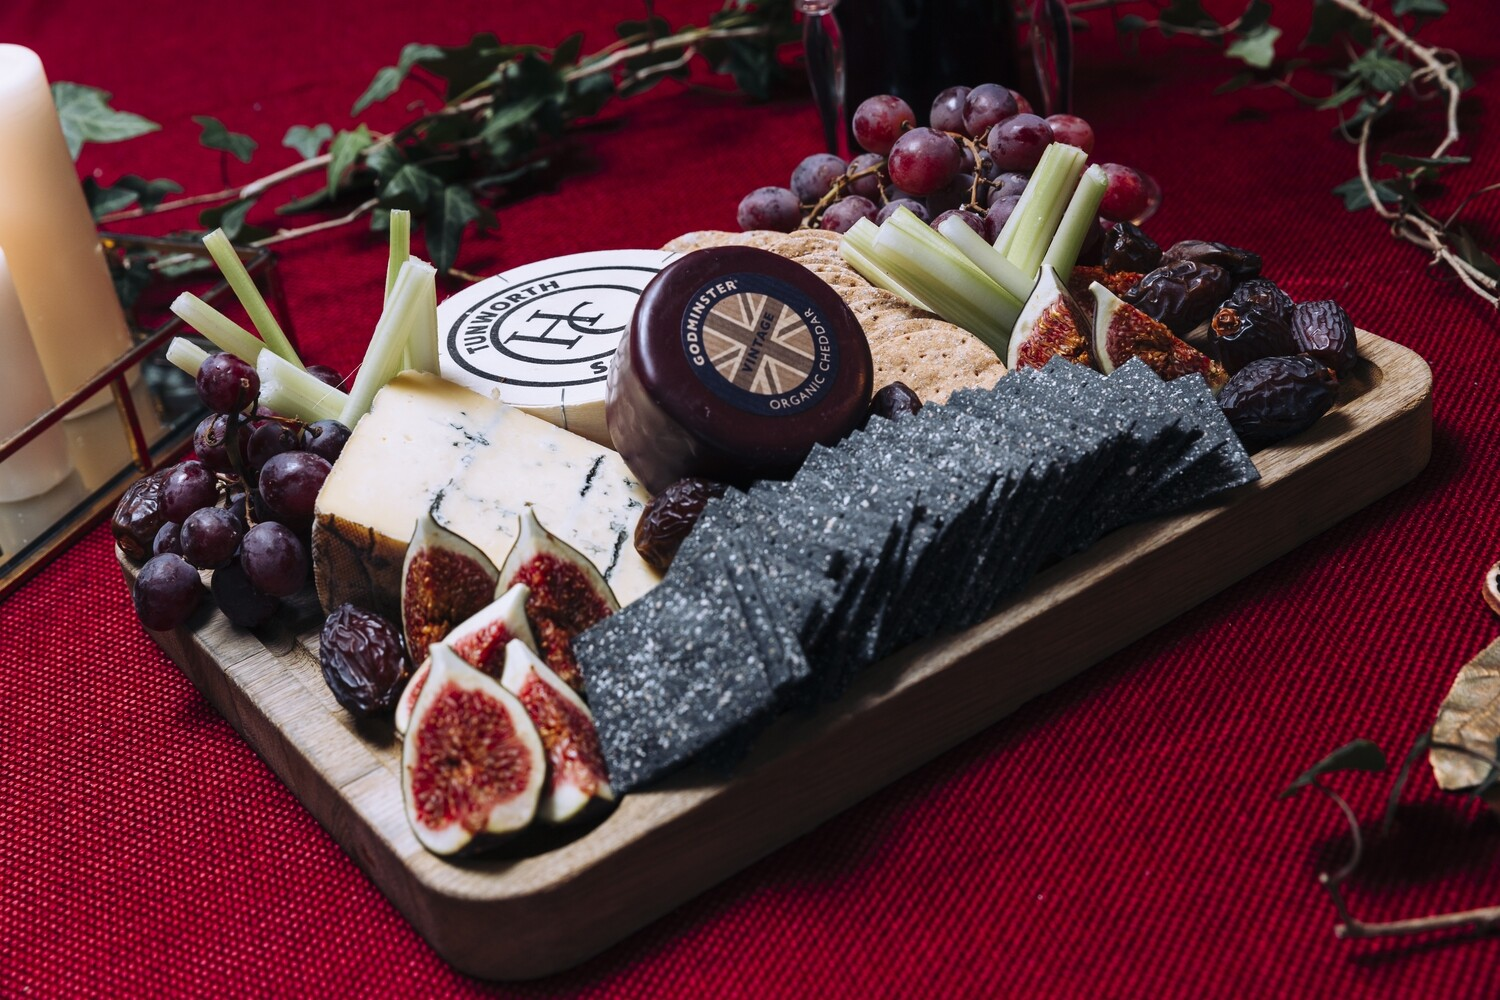 Our Curated British Cheeseboard